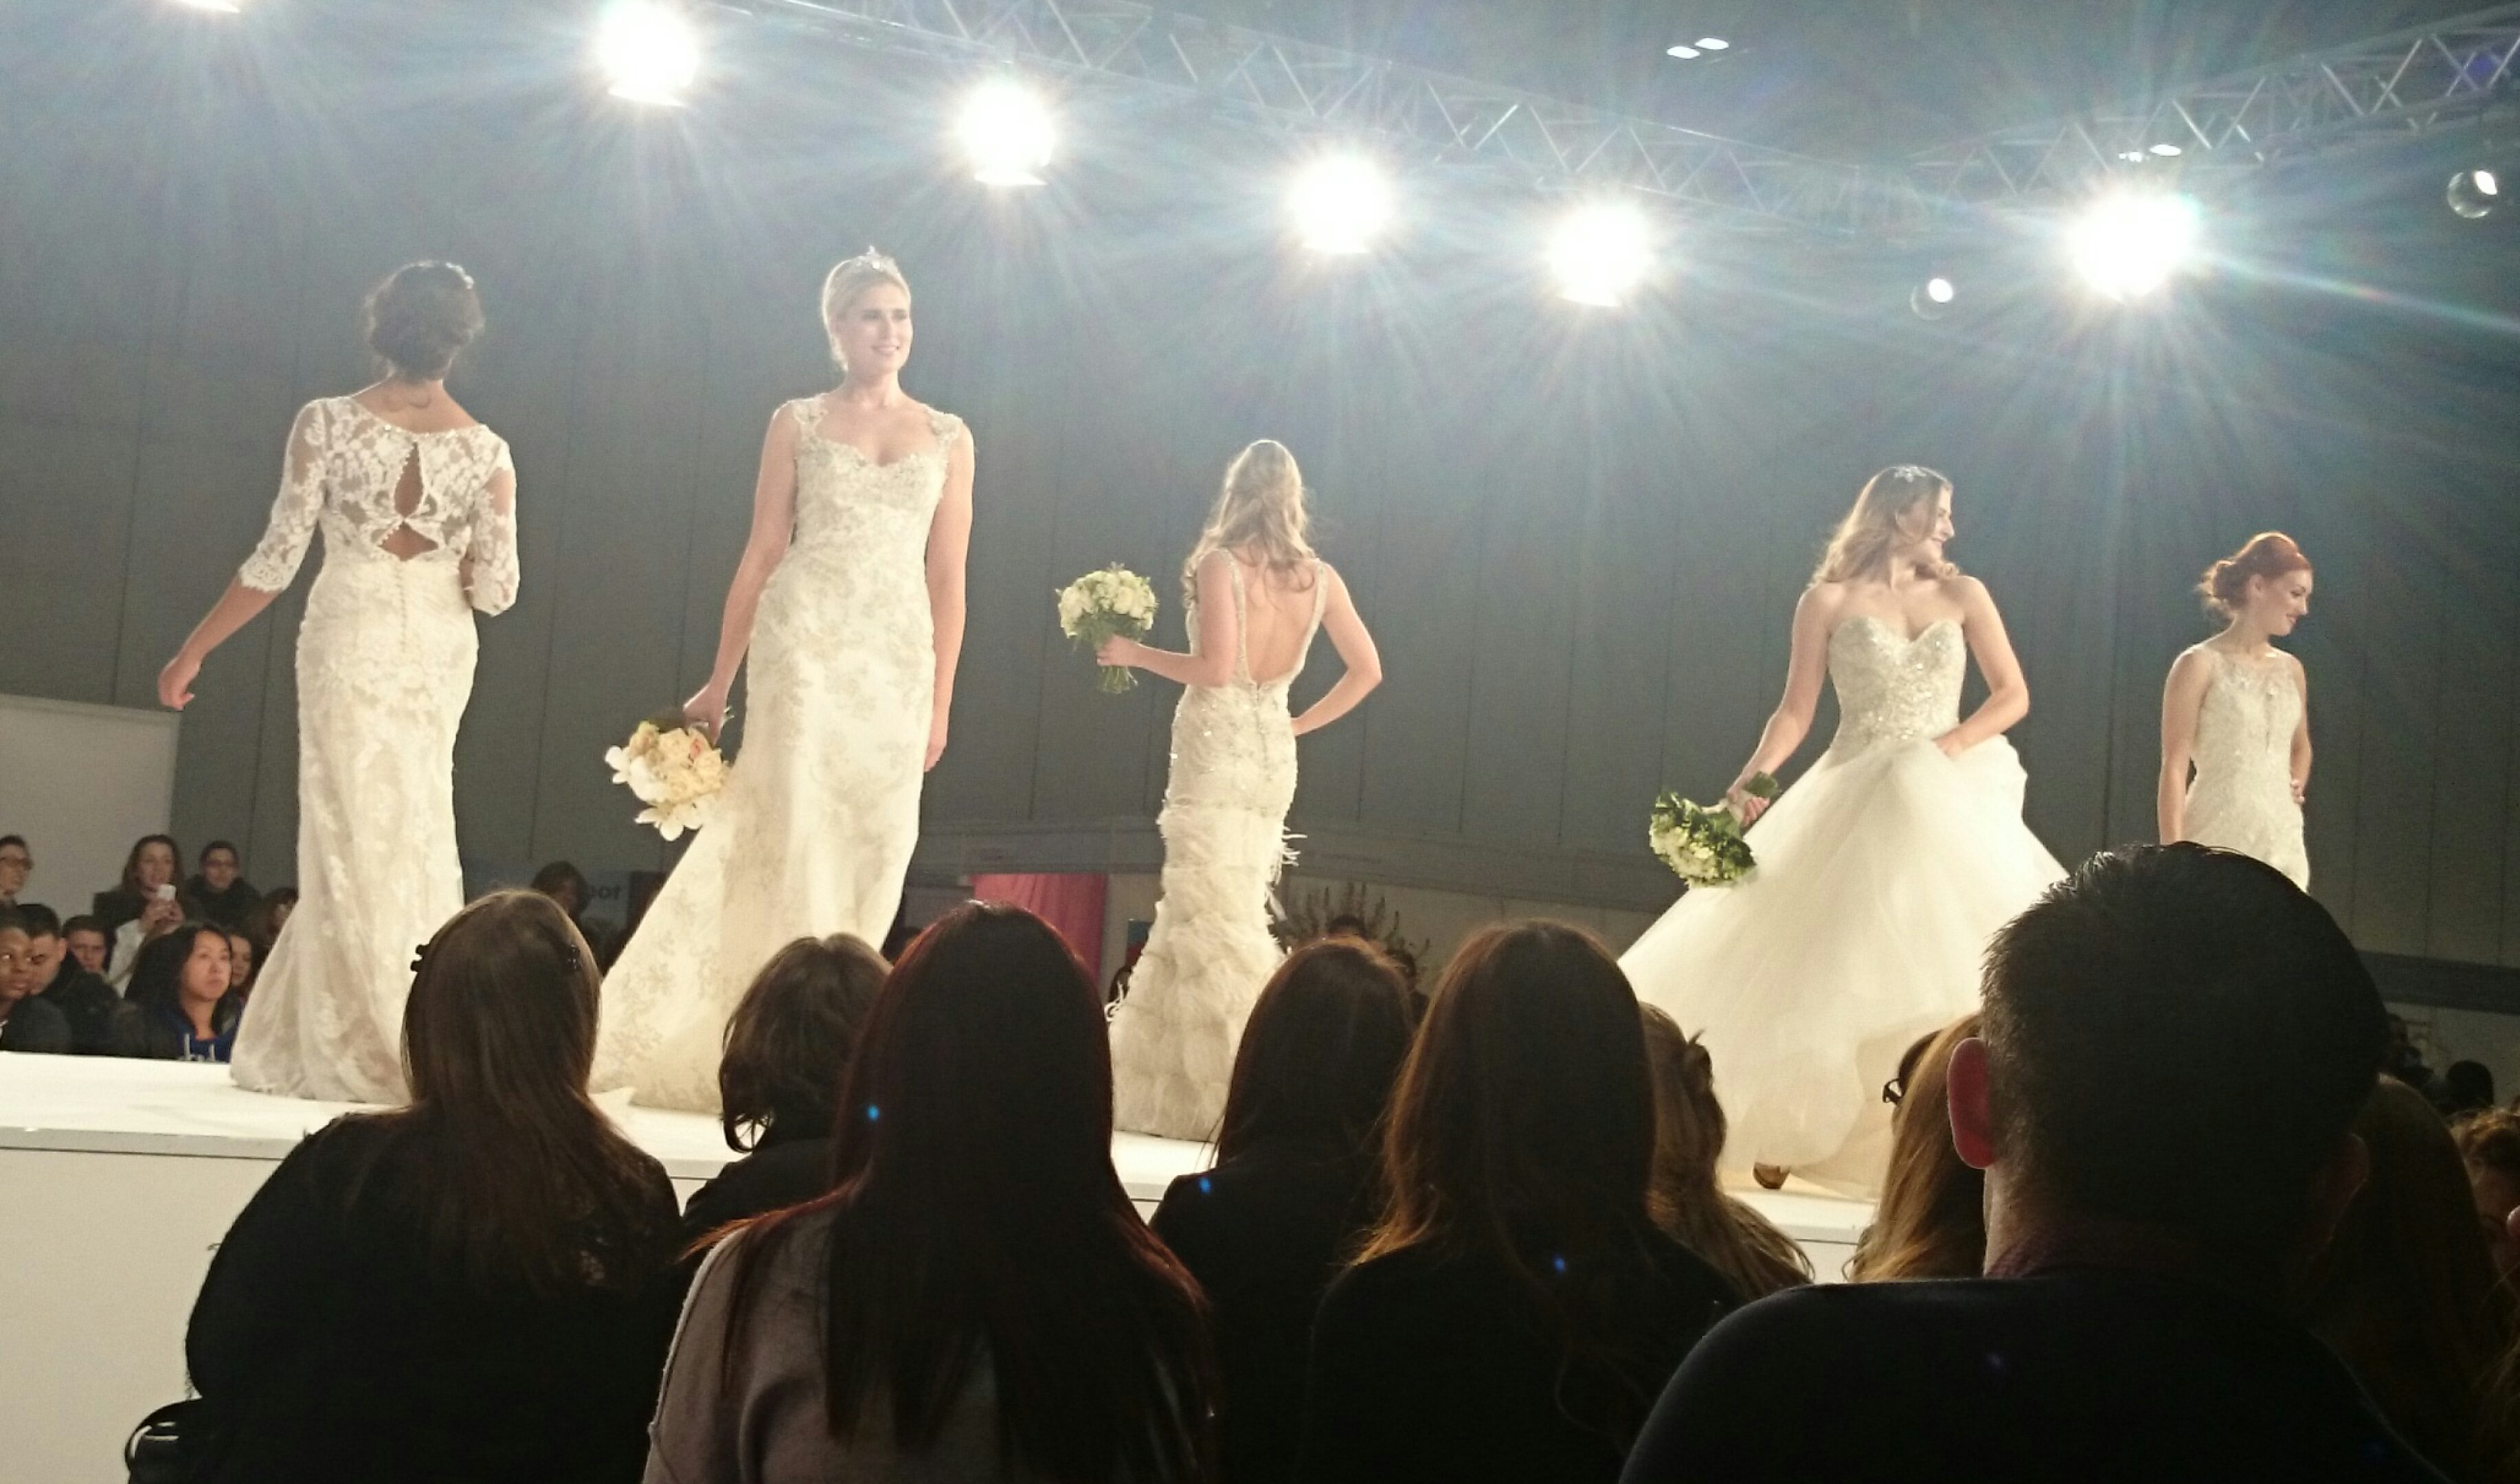 Afternoon at the Excel Wedding Show